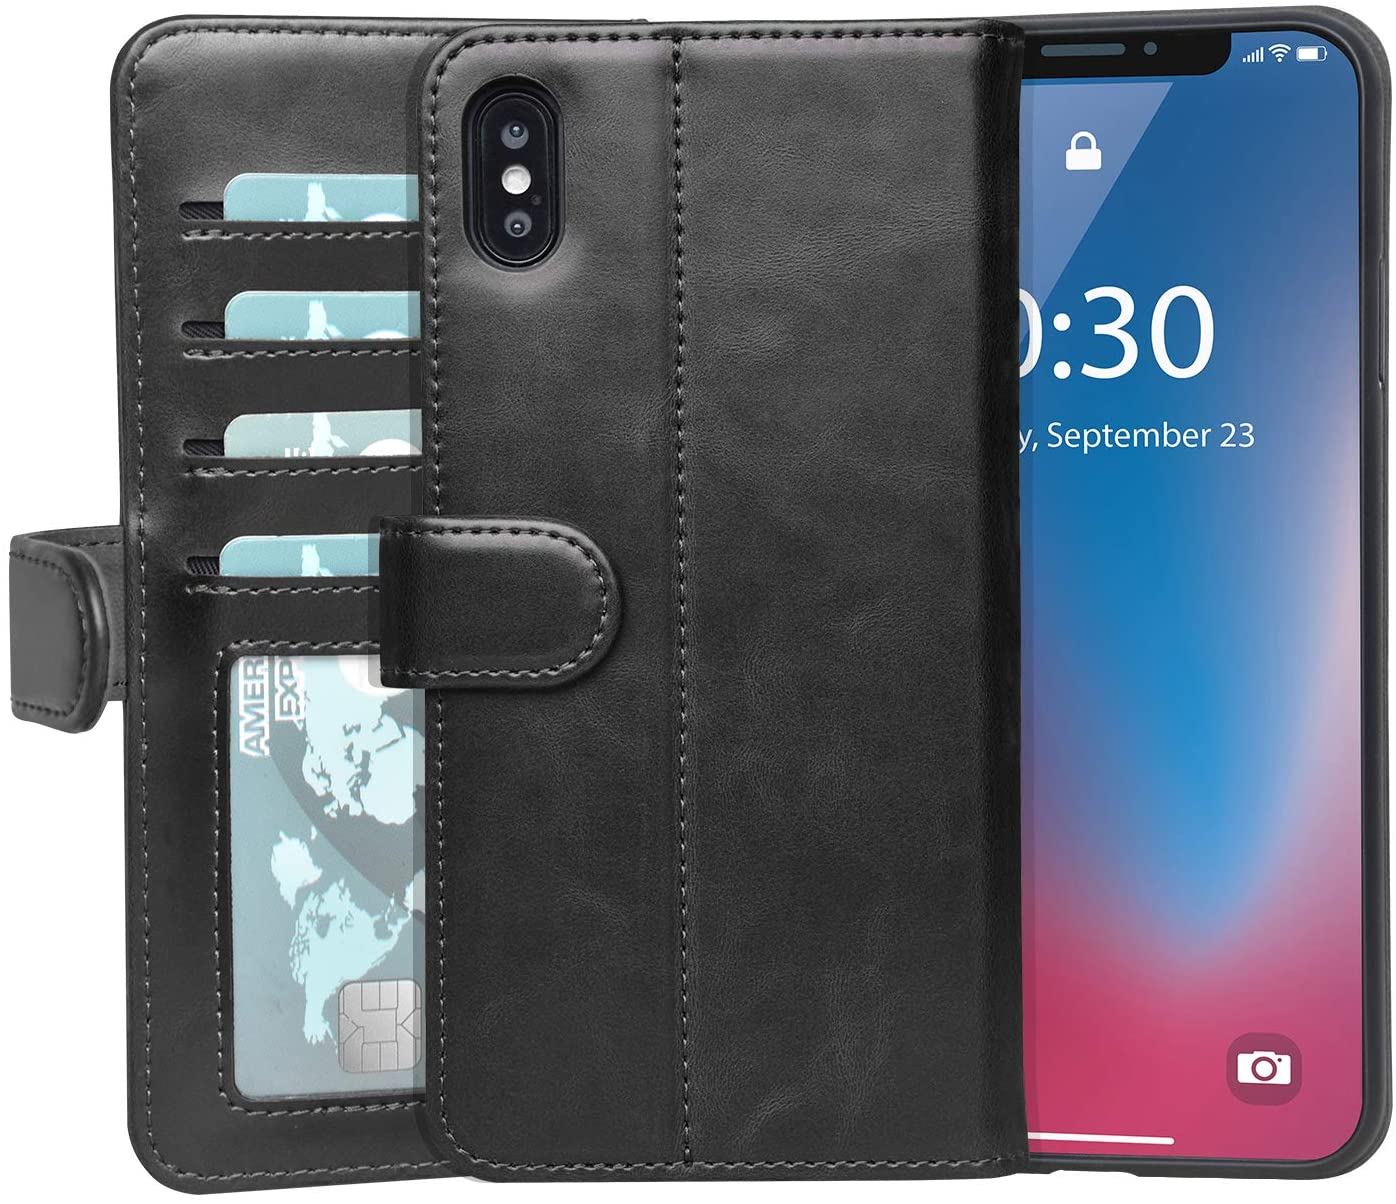 JOYSIDEA iPhone Xs Max Leather Wallet Case, Premium PU Leather Flip Folio Cover with 4 Credit Card Holders, 2 Note Pockets and Kickstand for Apple iPhone Xs Max 6.5 inch – Black